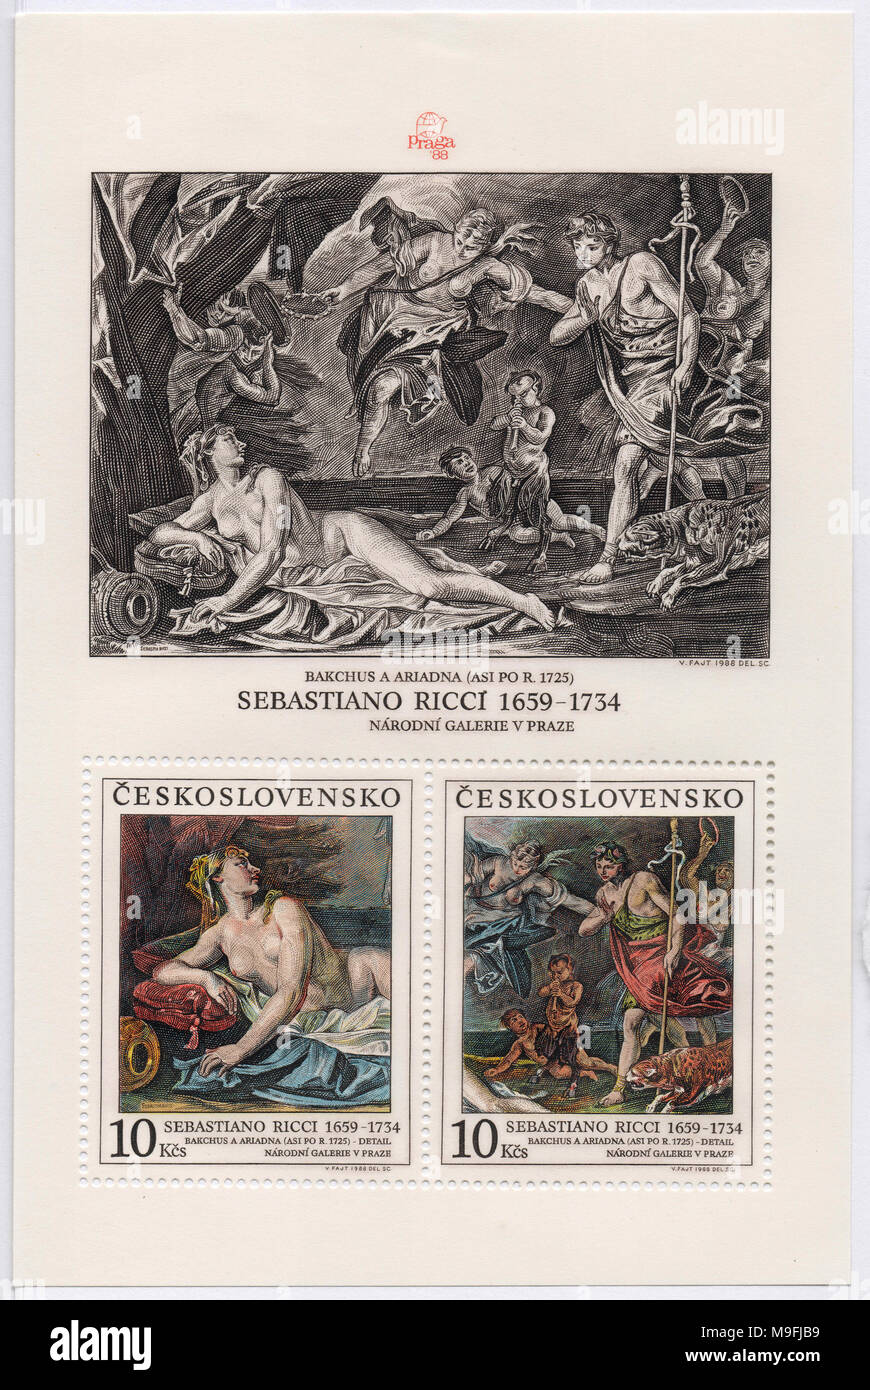 Bacchus and Ariadne by Sebastian Ricci on stamp sheet. Printed in Prague, Czechoslovakia (now Czech Republic) in 1988. Art circa 1725. Stock Photo